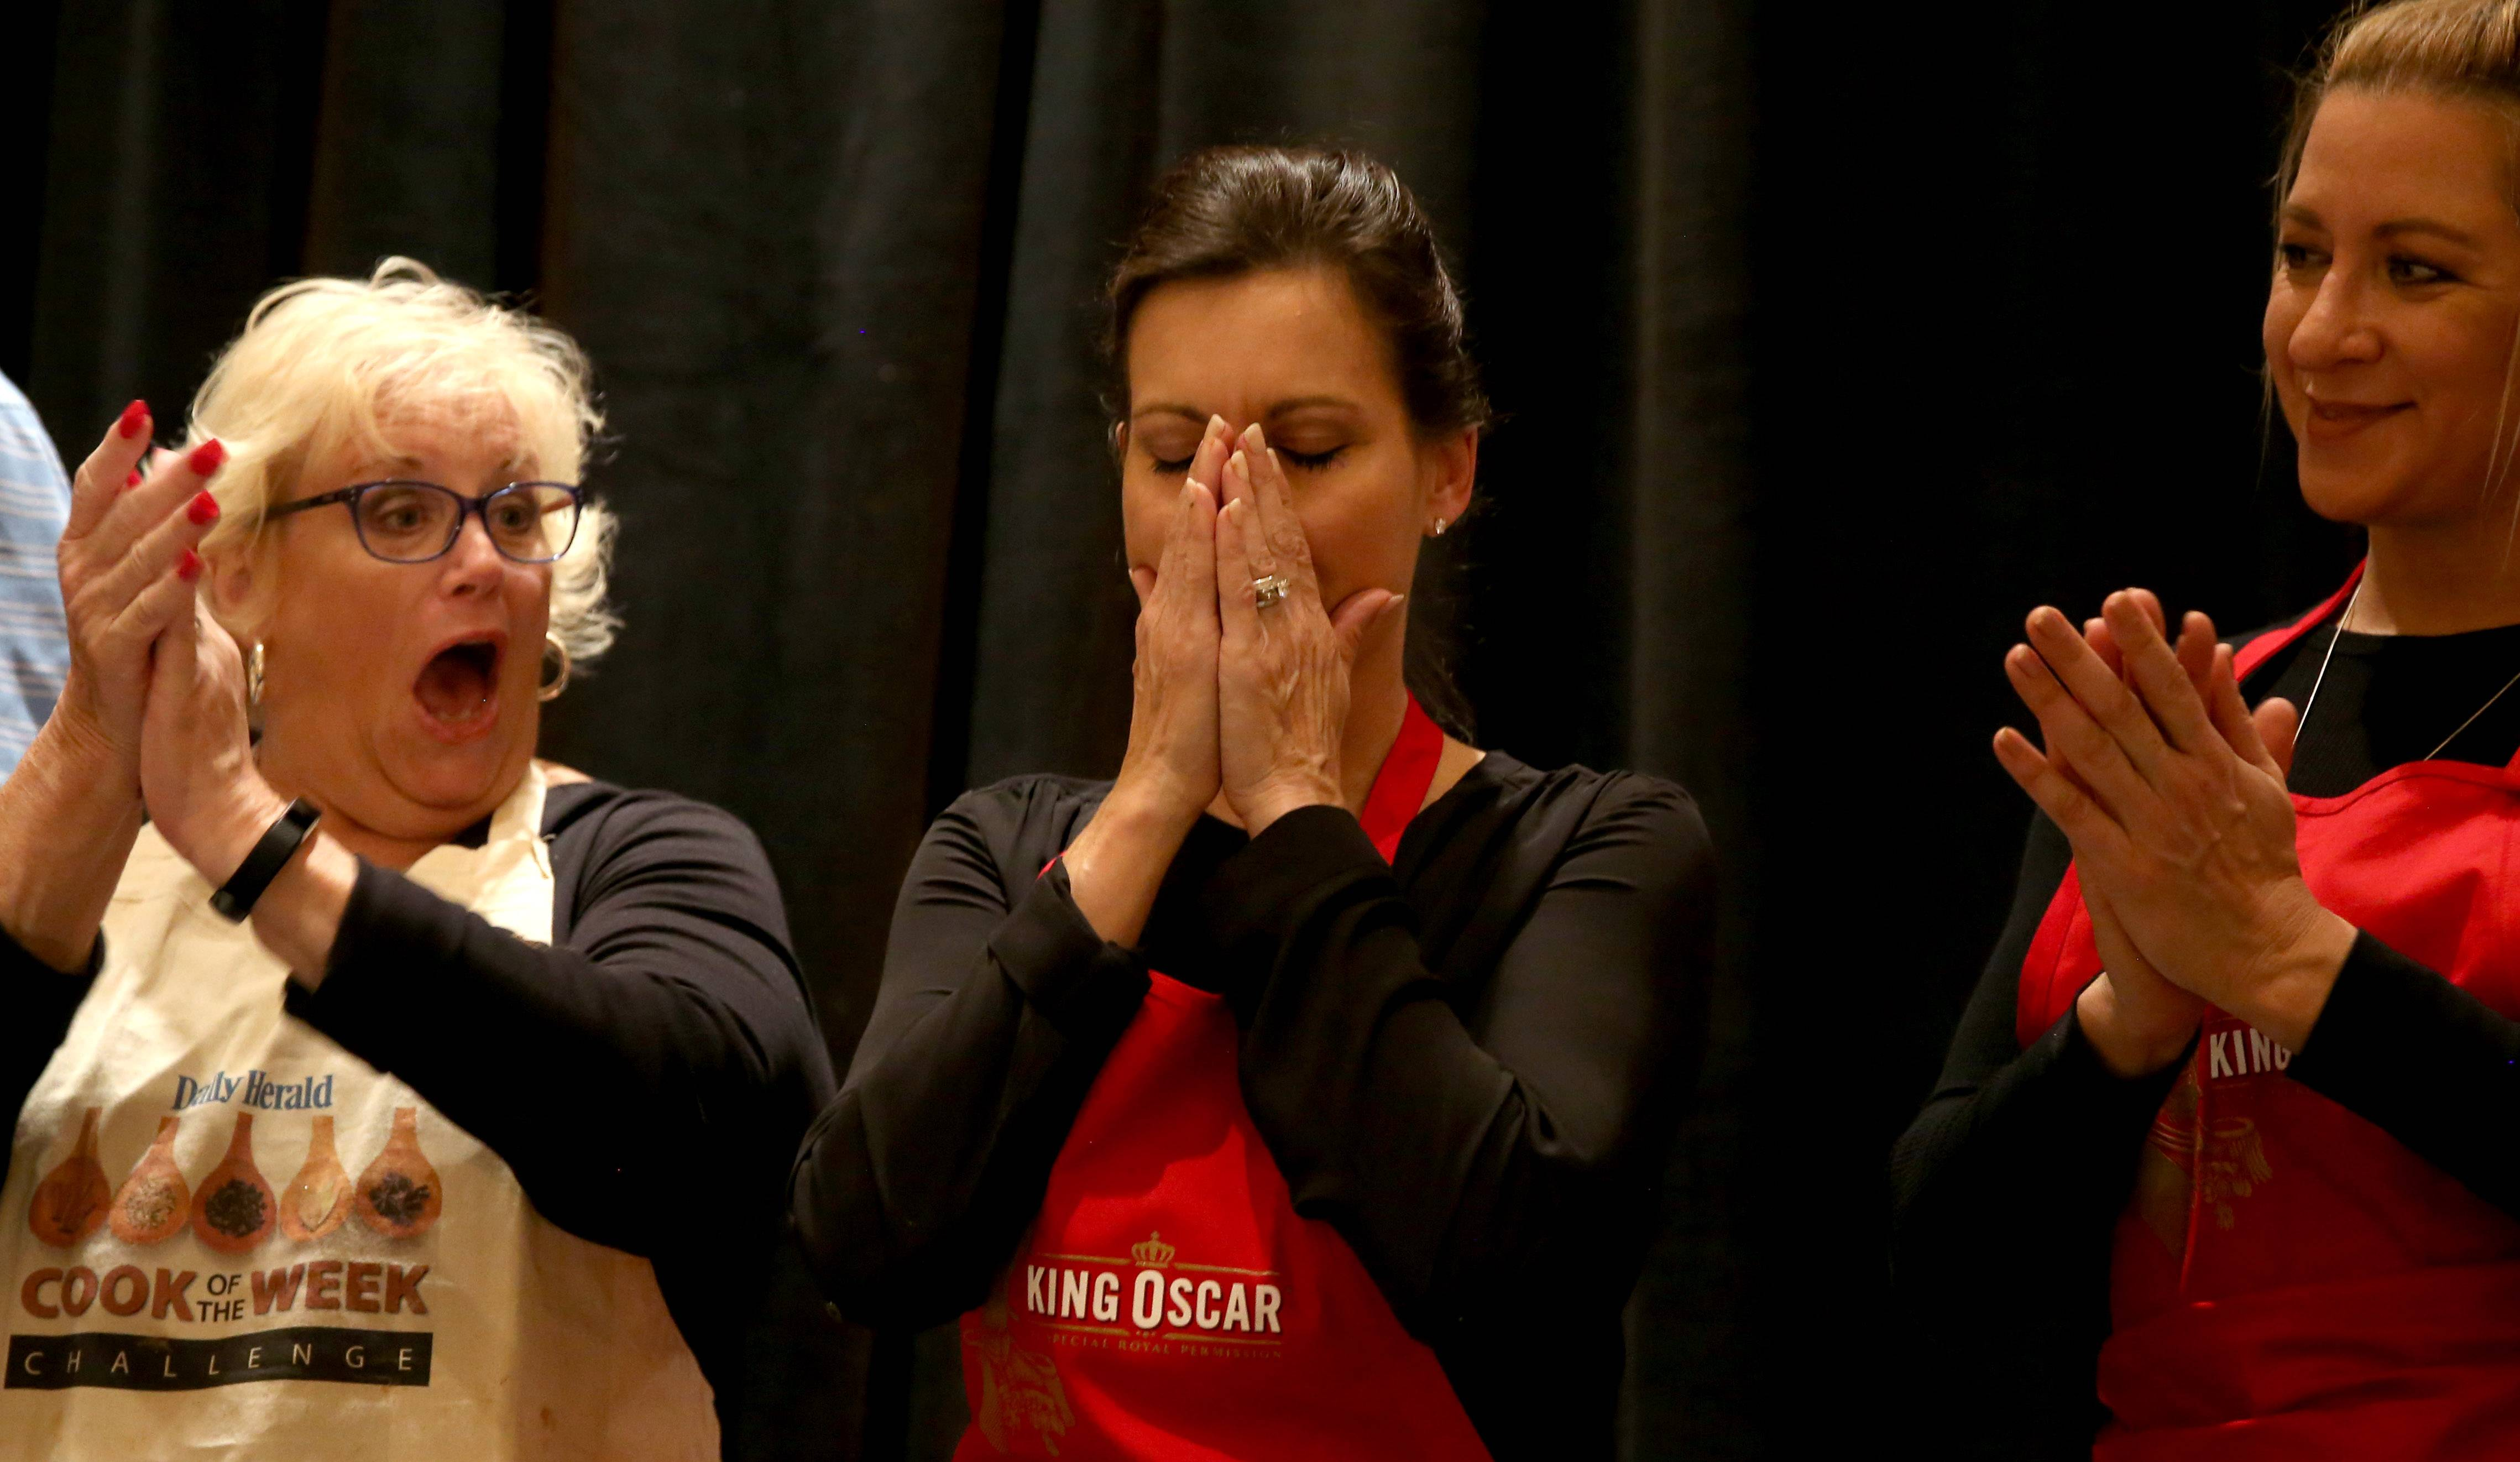 Elizabeth Schuttler of Inverness reacts upon being named winner of the 2017 Daily Herald Cook of the Week Challenge finale during a live cooking competition at the Westin Chicago Northwest in Itasca Monday night.